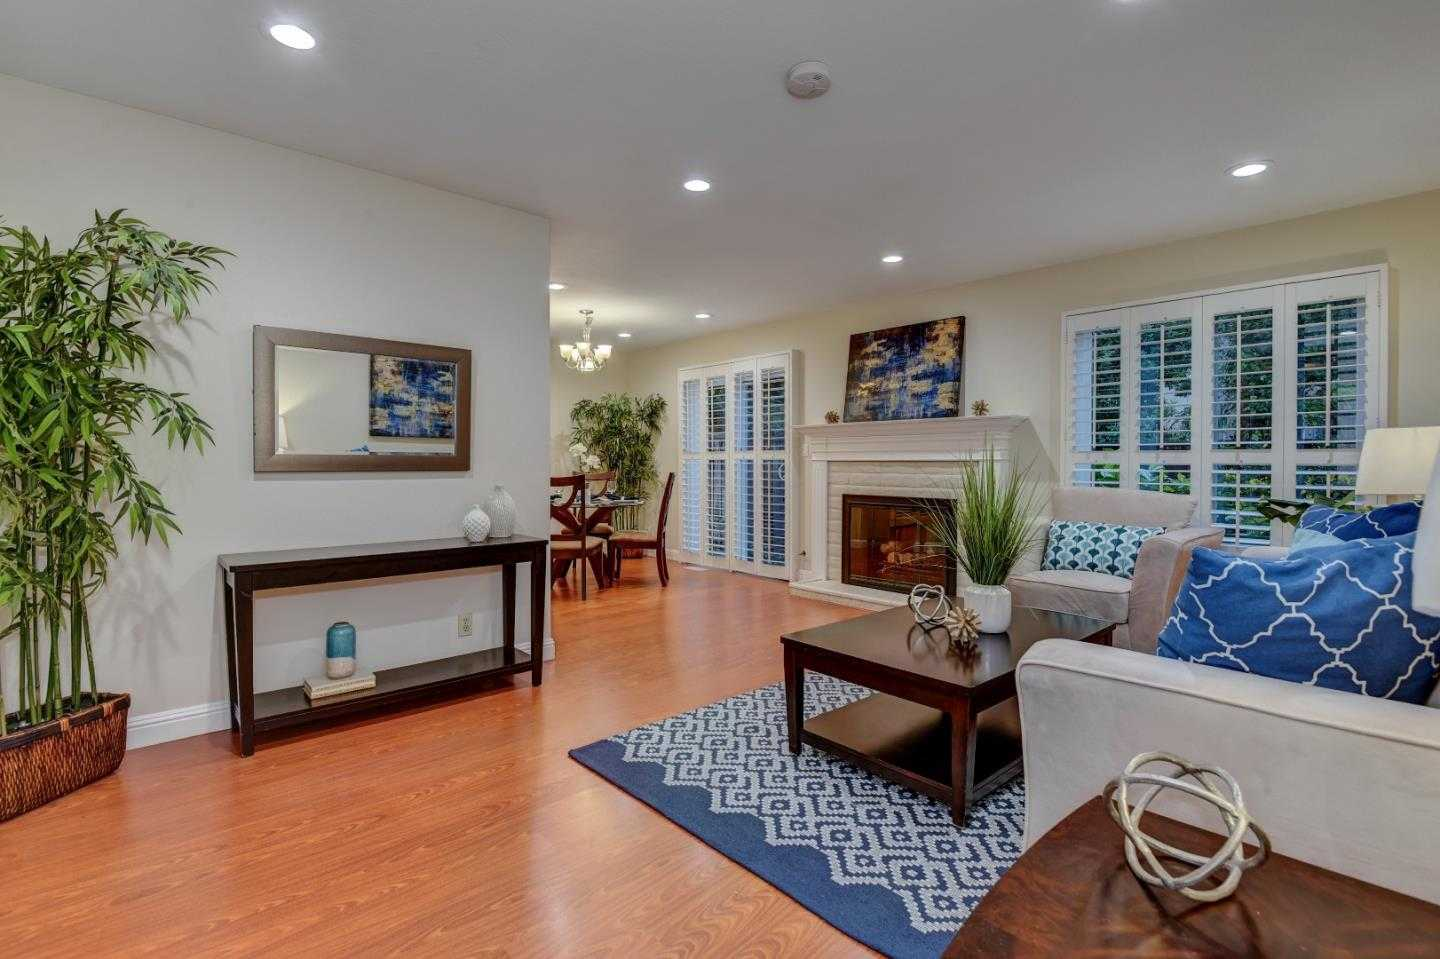 $1,199,000 - 3Br/3Ba -  for Sale in Sunnyvale